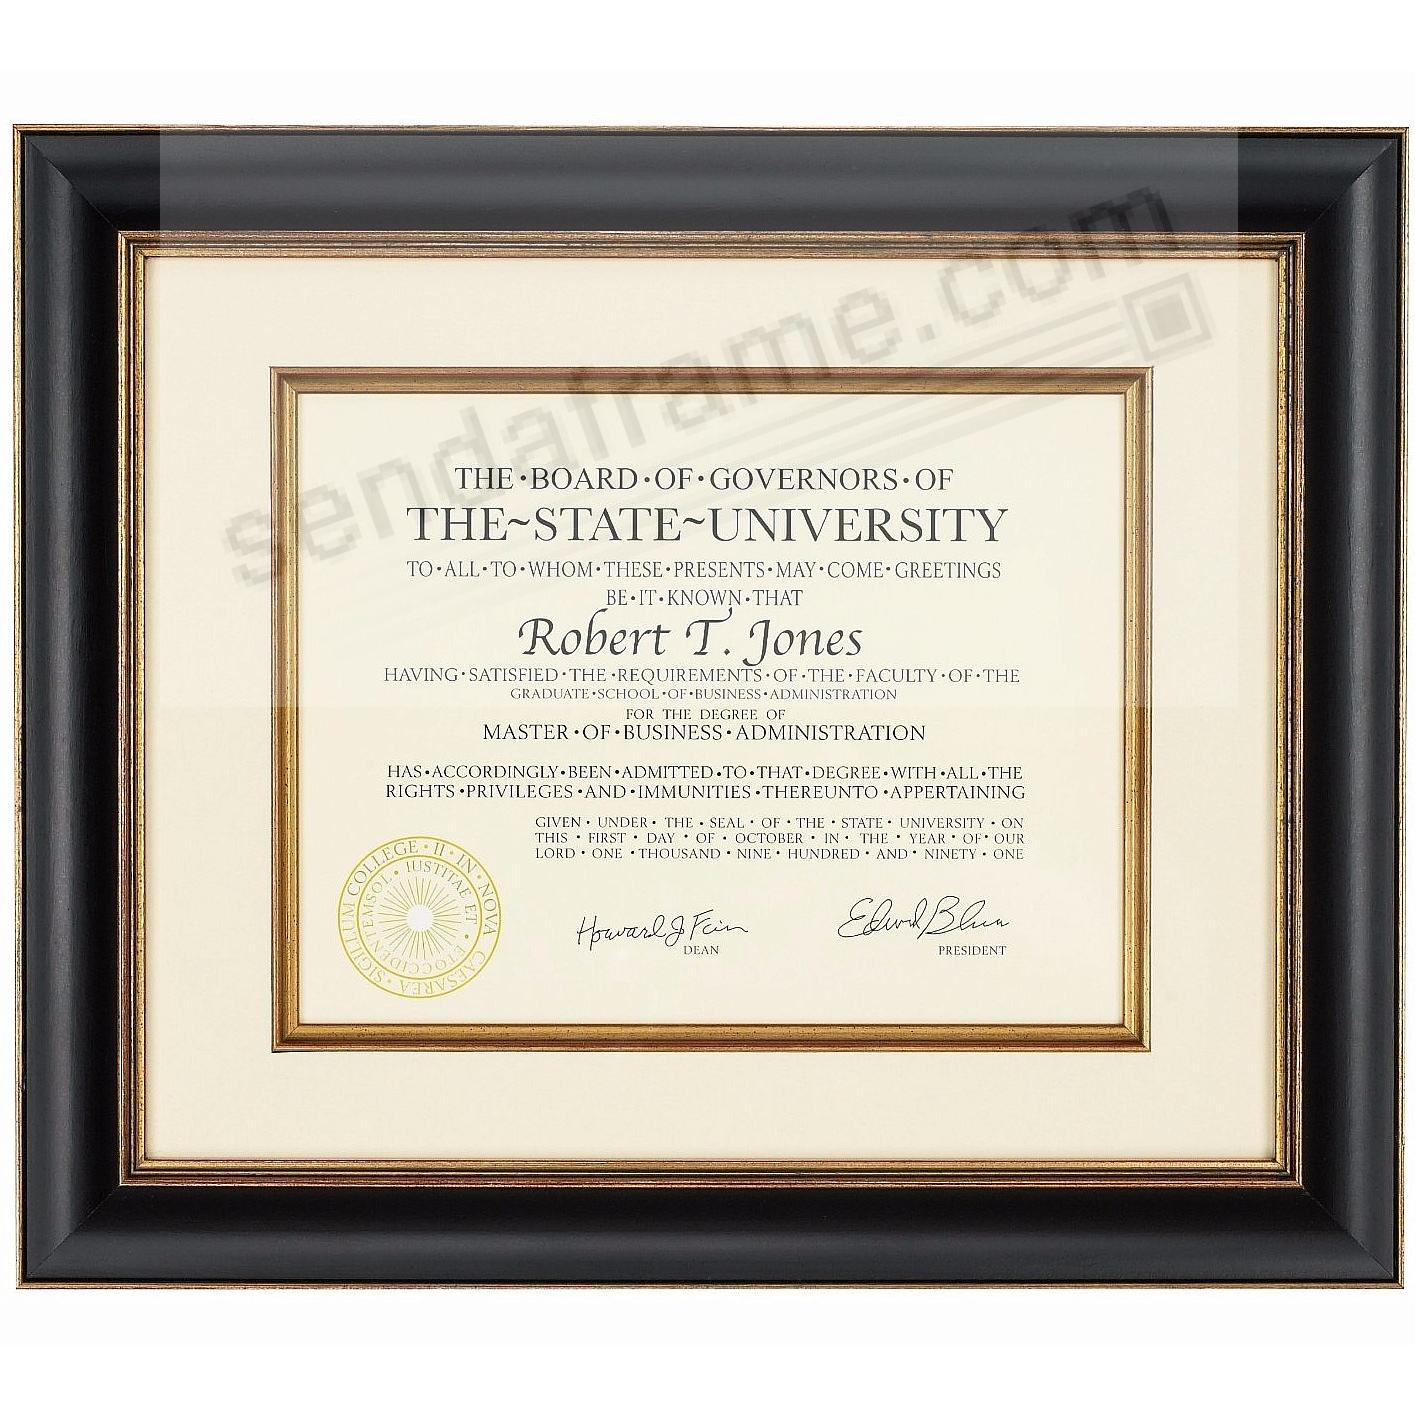 BLACK/GOLD TUSCAN Wood/matted certificate frame 15x12/11x8½ from ARTCARE® by Nielsen®